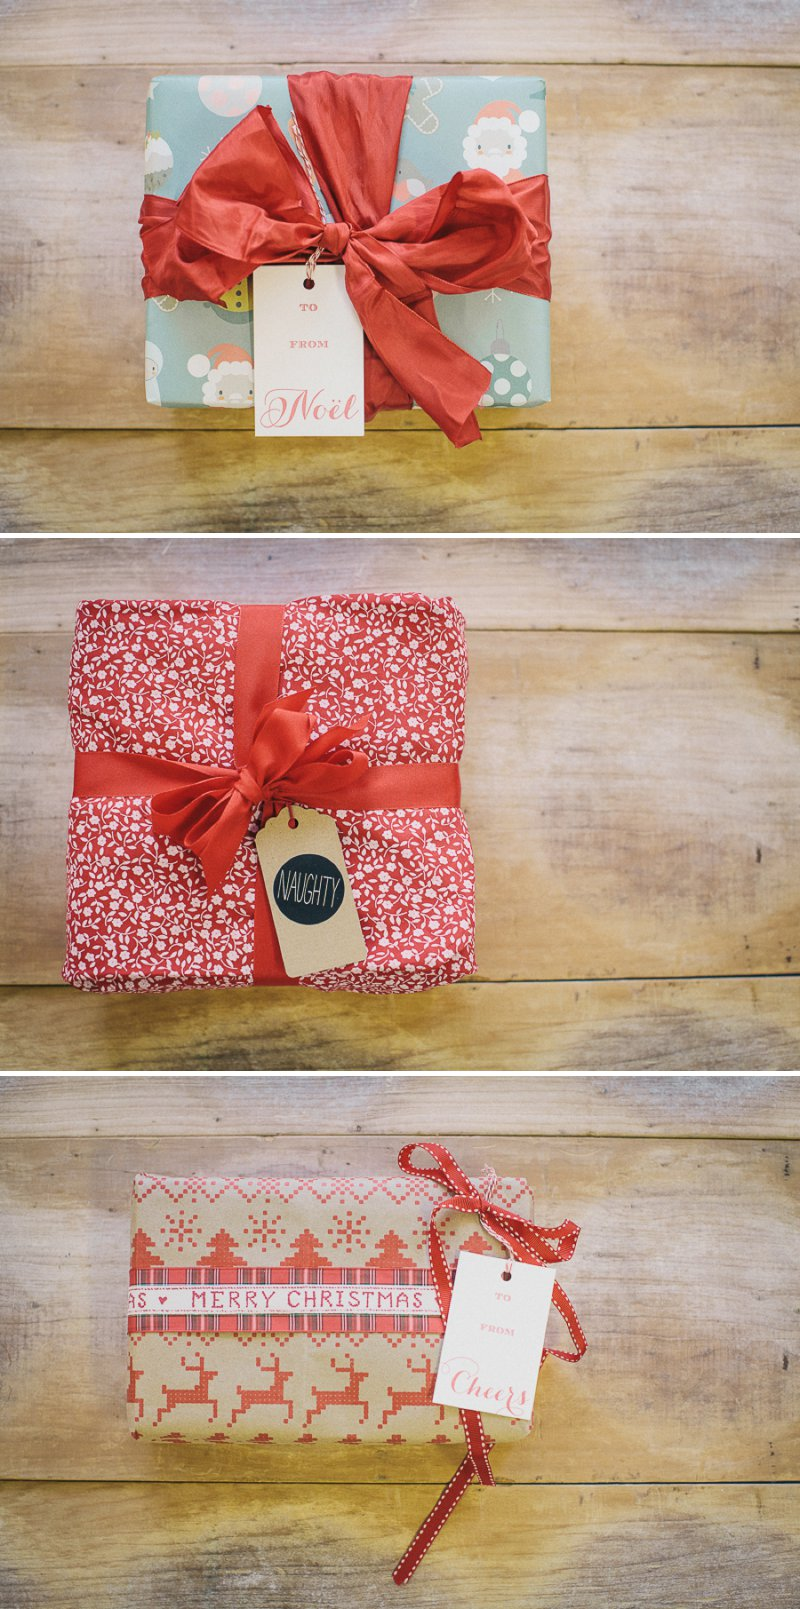 Nine Beautiful And Creative Christmas DIY Gift Wrap Ideas With Ribbons, Fun Gift Tags and Gorgeous Wrapping Paper From Etsy Suppliers._0001